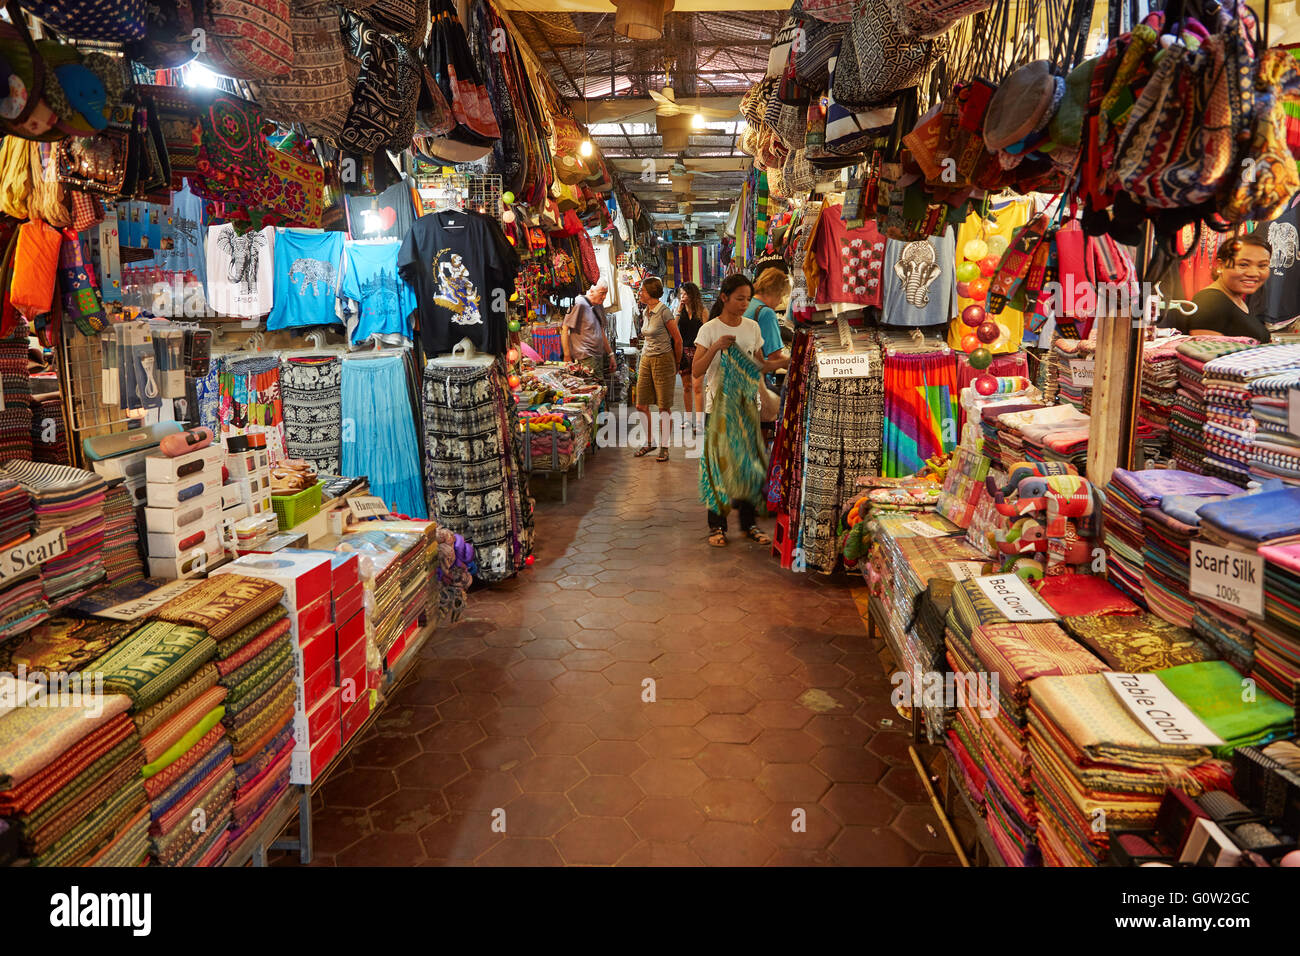 Cloth, silk, cloths and handcrafts at Old Market, Siem Reap, Cambodia - Stock Image